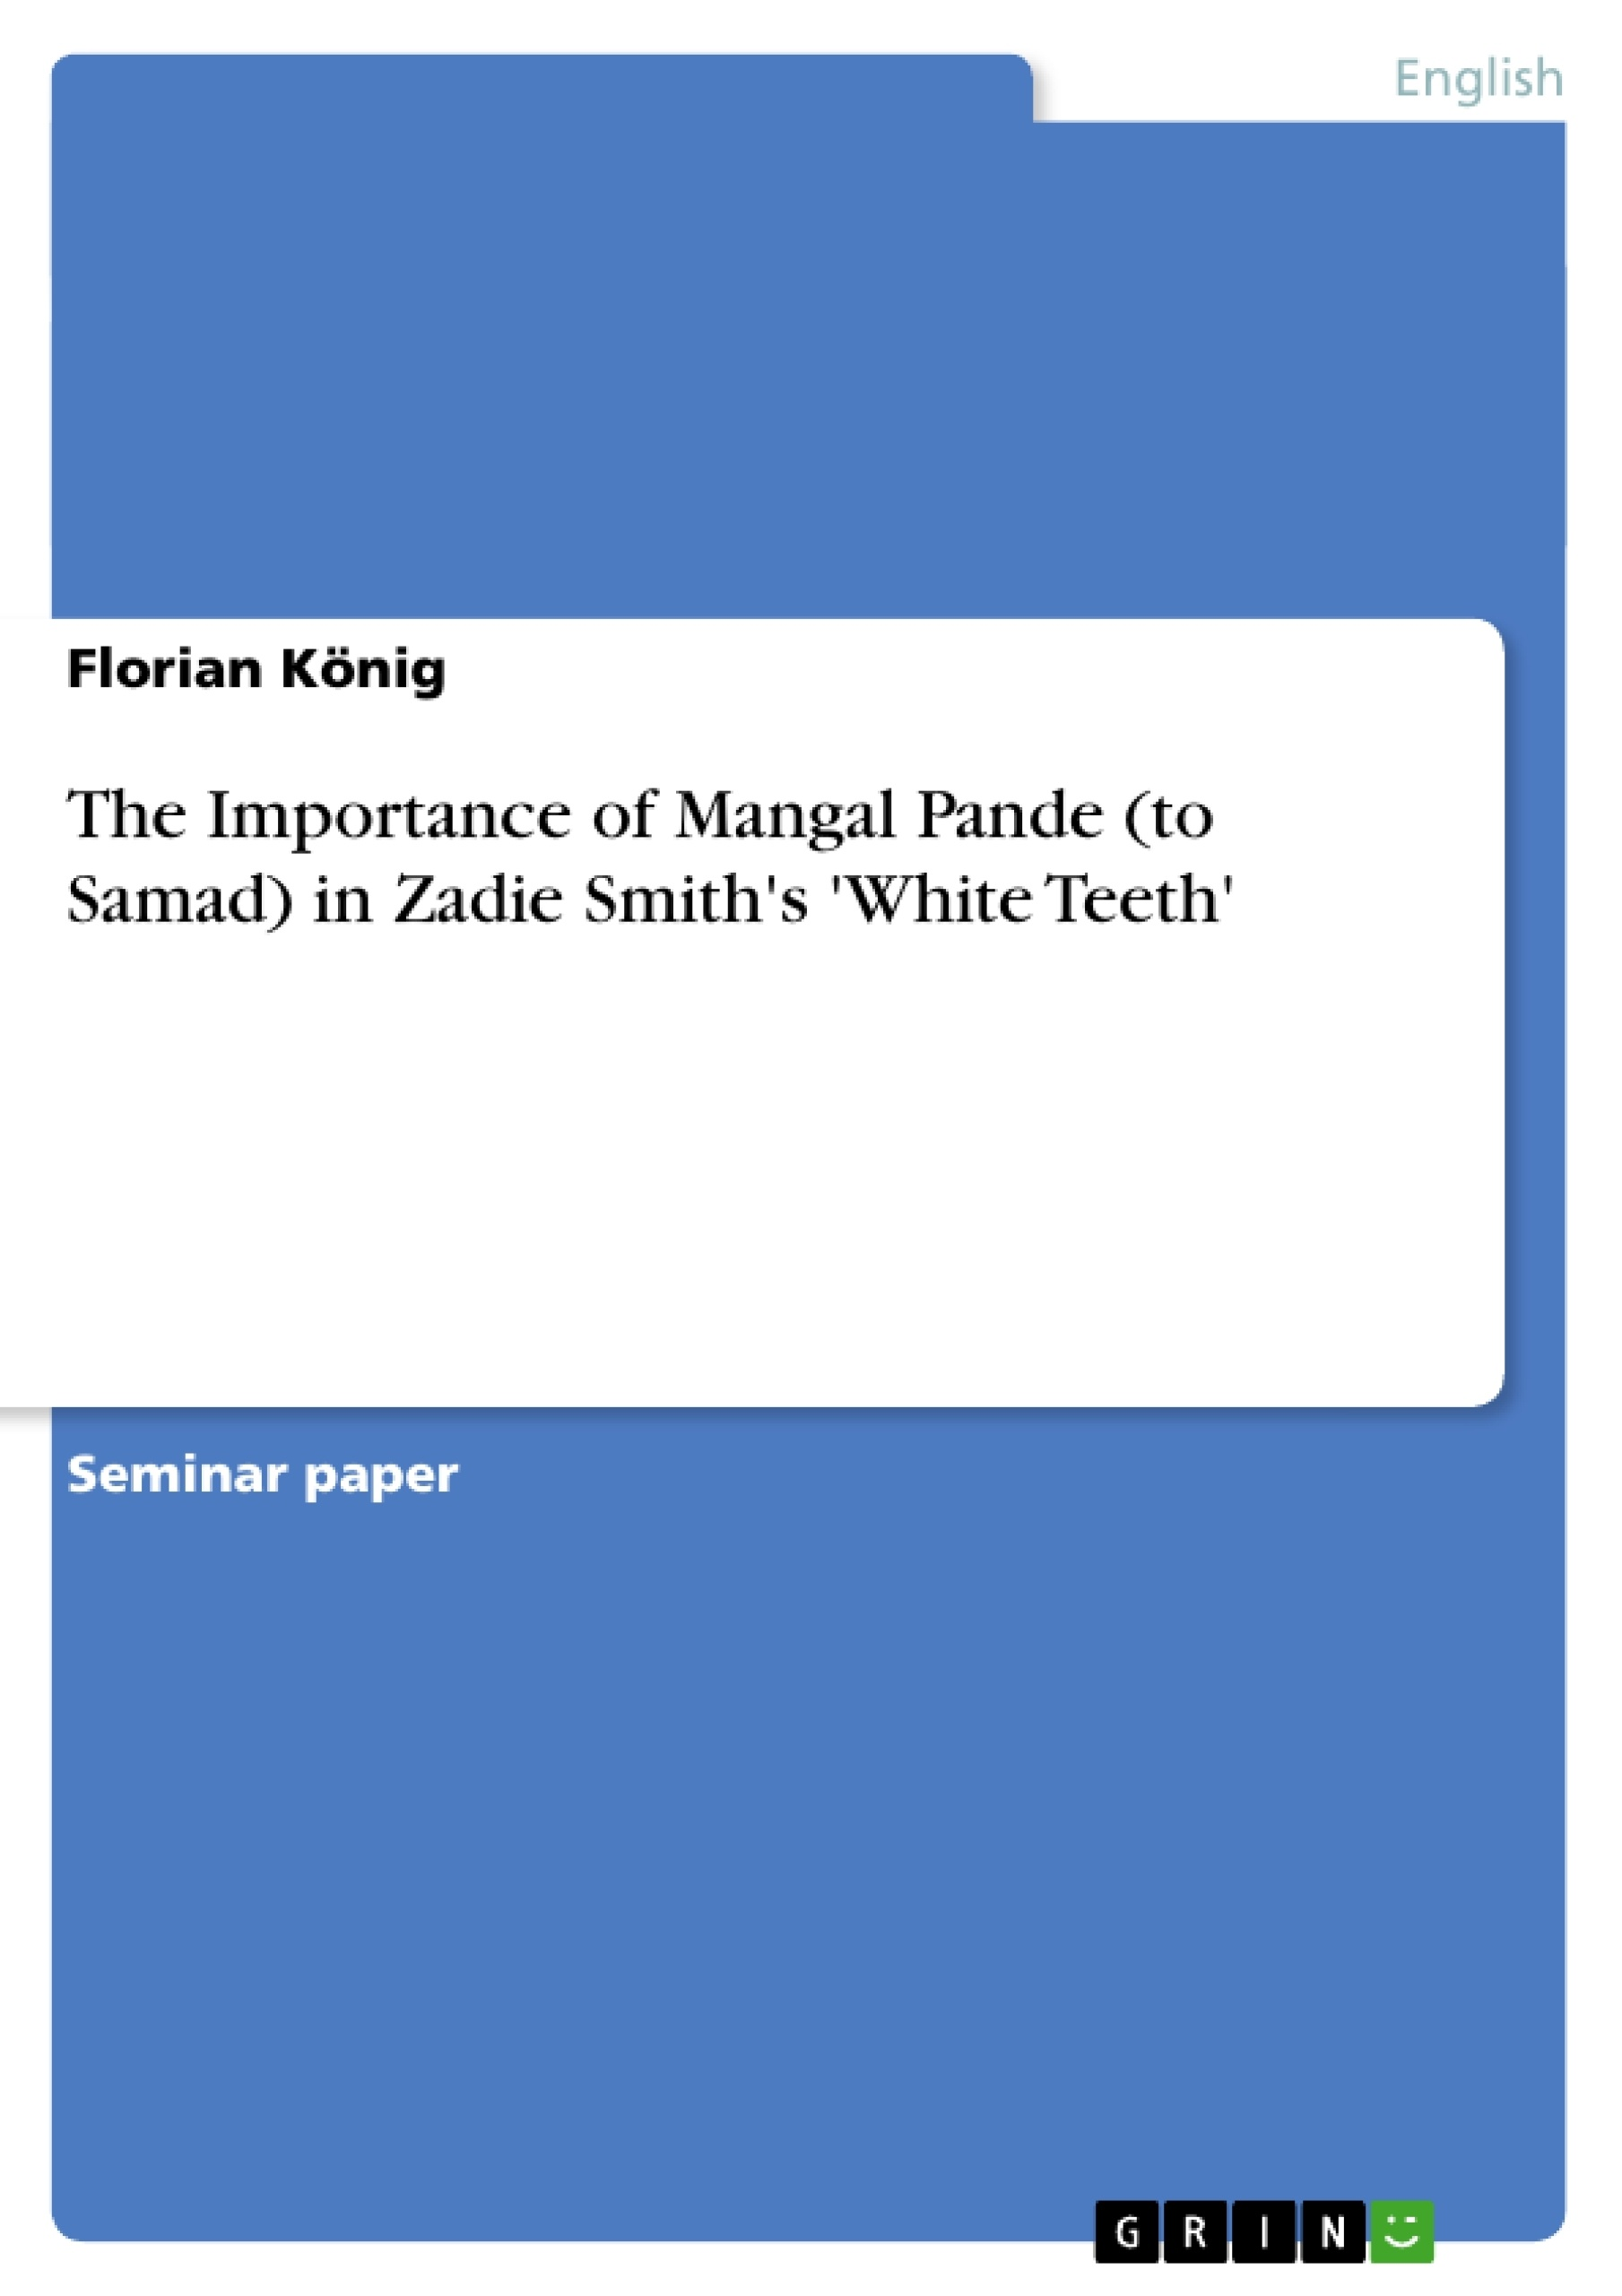 Title: The Importance of Mangal Pande (to Samad) in  Zadie Smith's 'White Teeth'